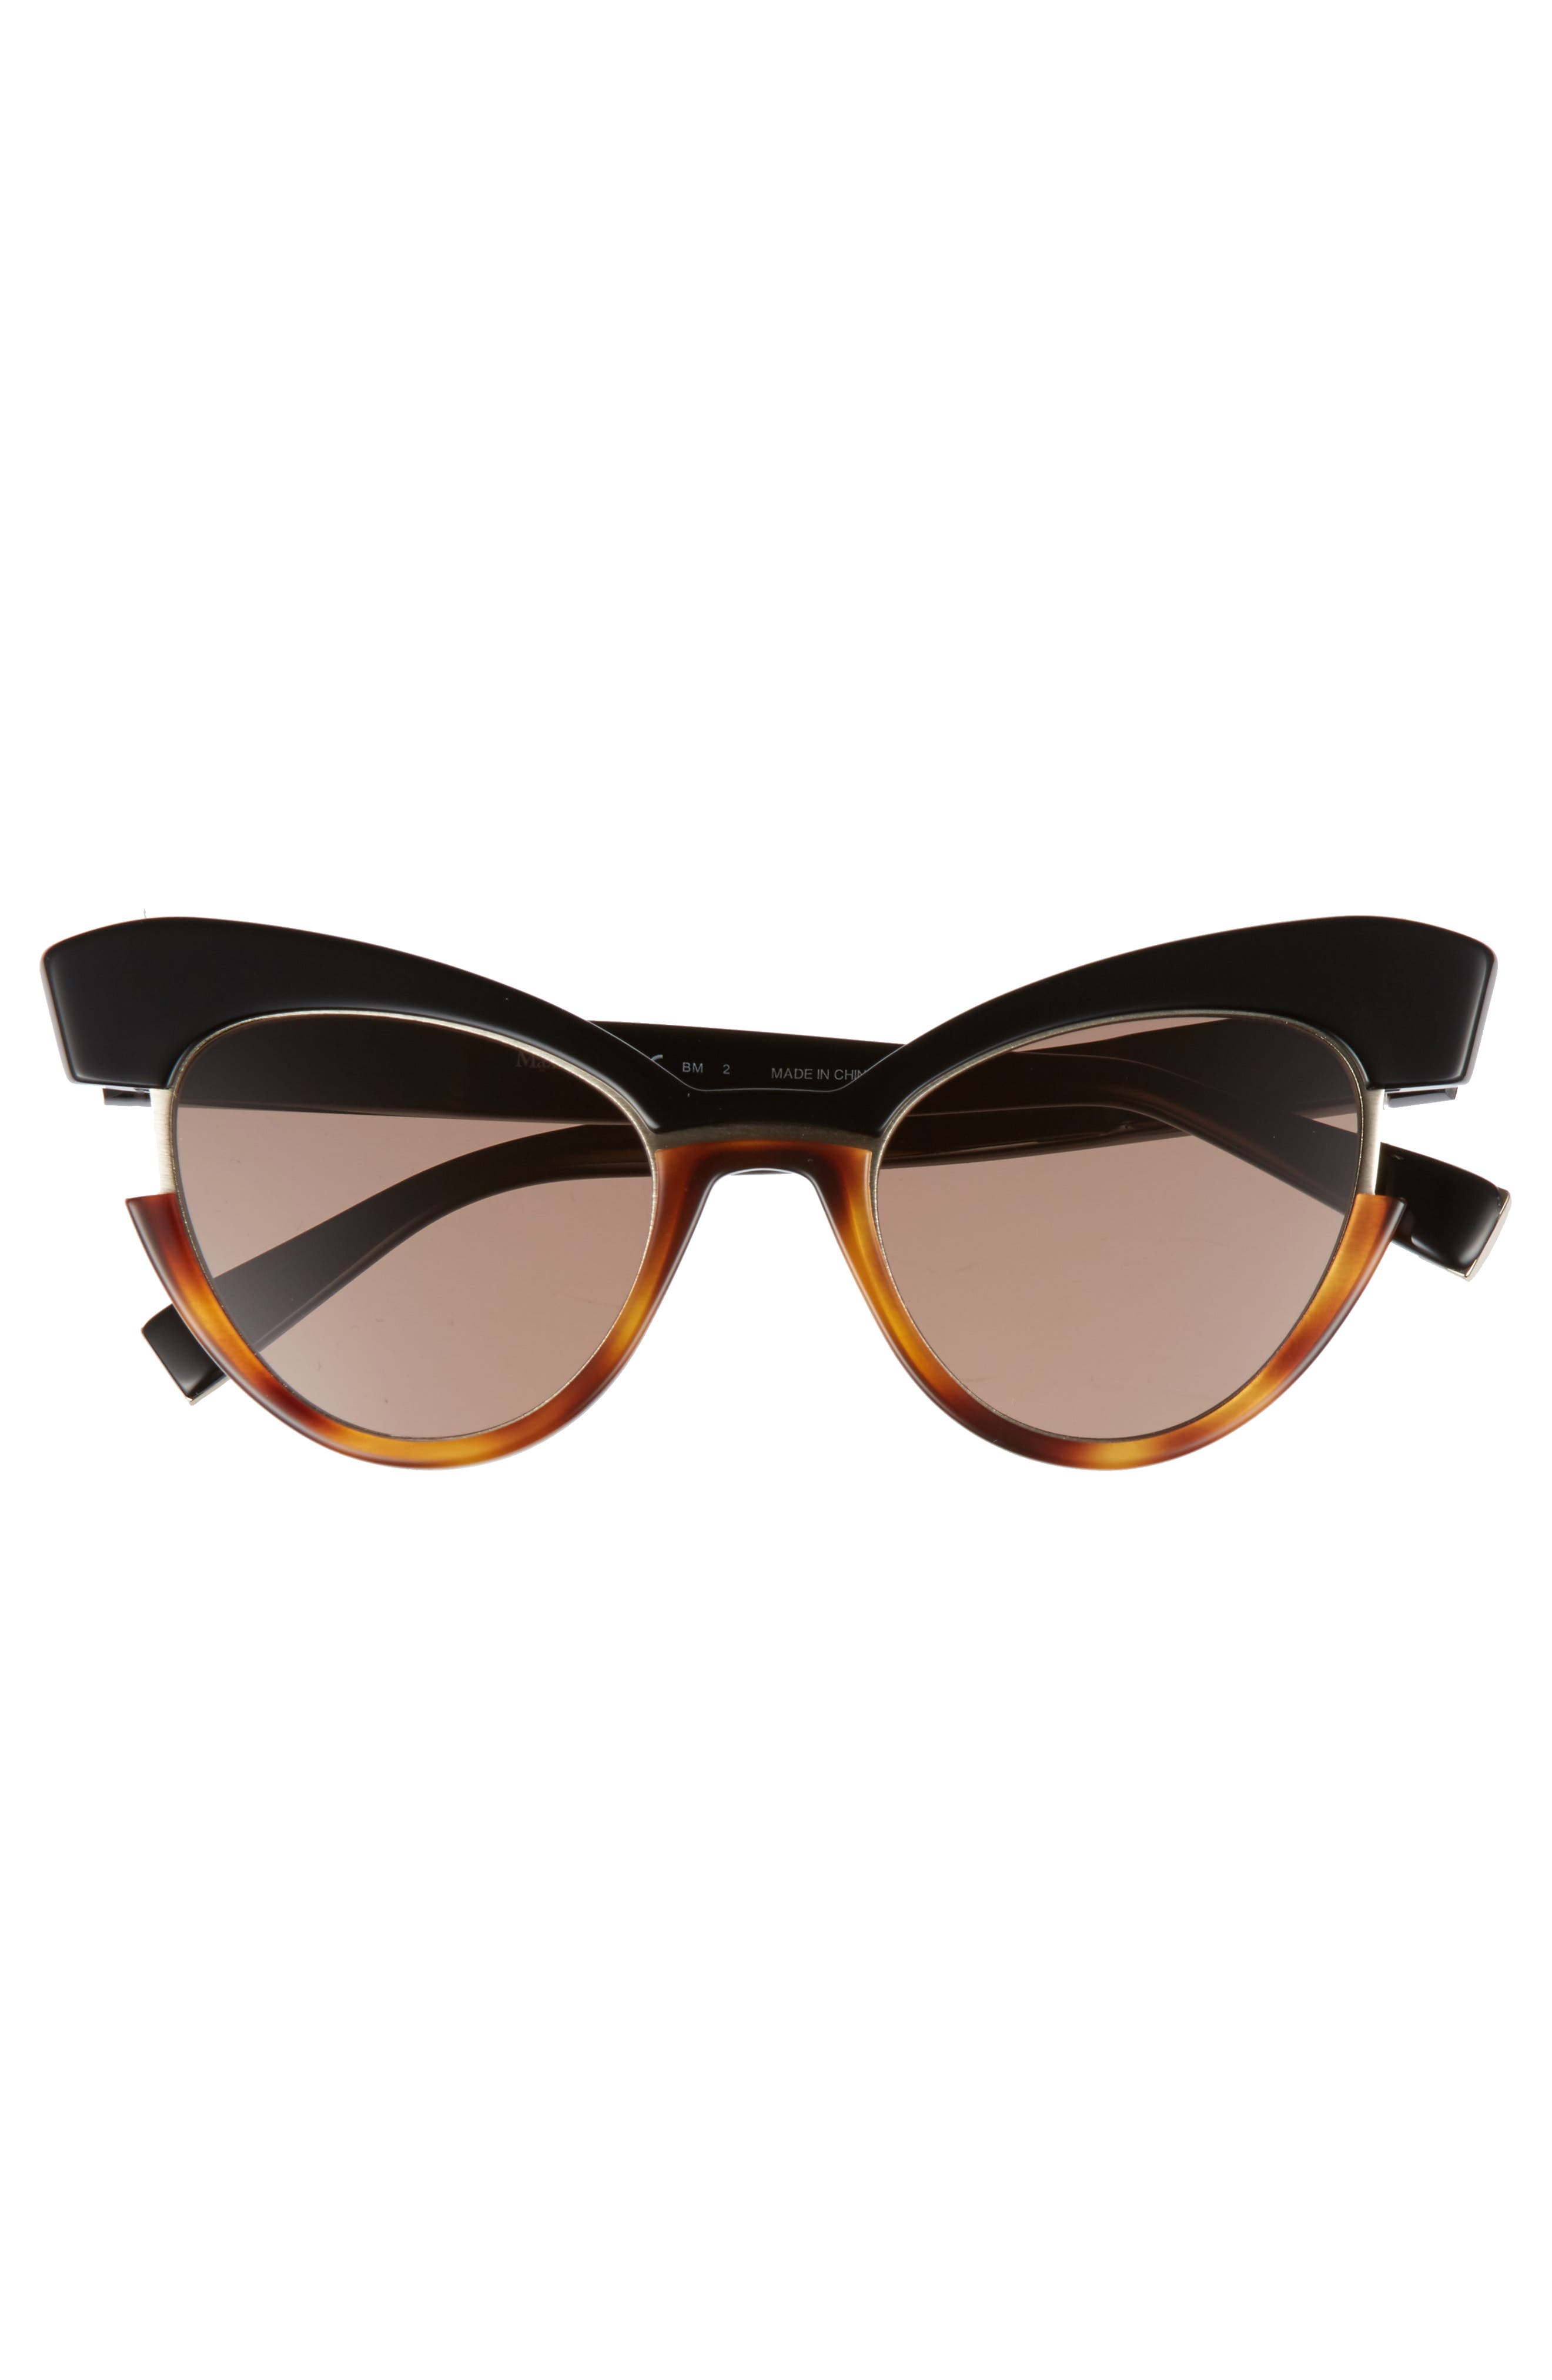 49mm Gradient Lens Cat Eye Sunglasses,                             Alternate thumbnail 3, color,                             BLACK HAVANA